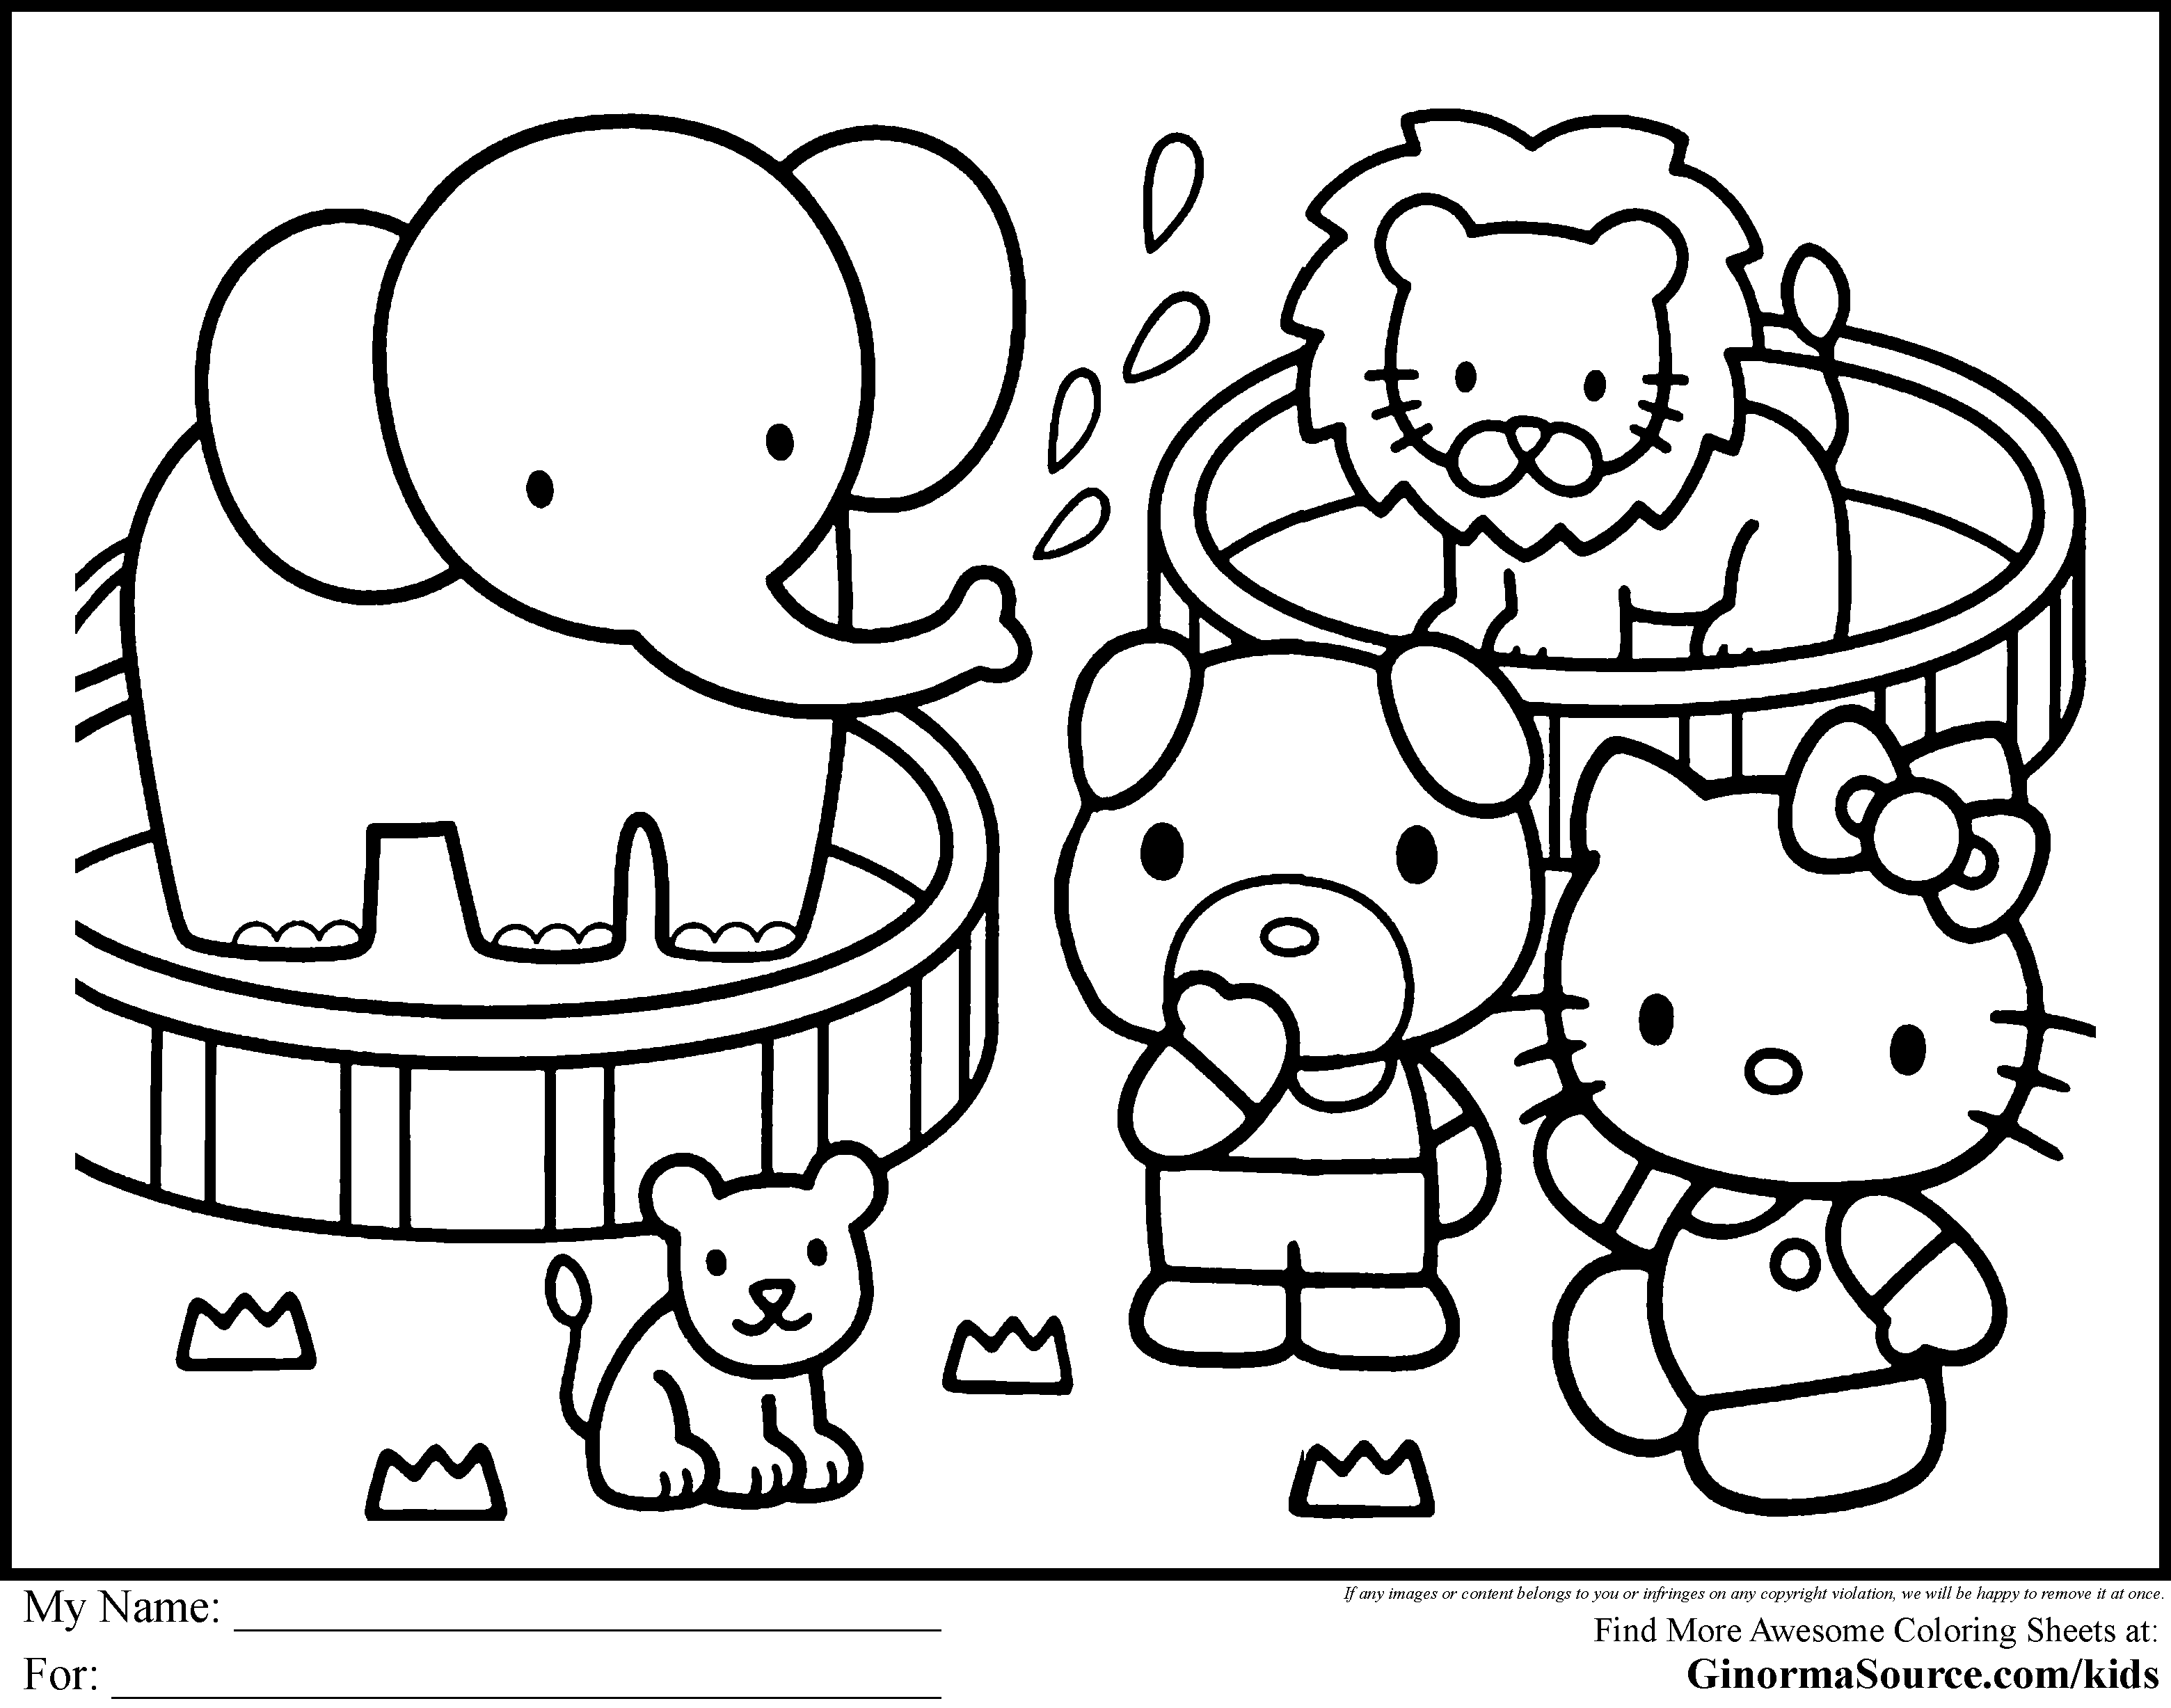 Coloring Pages Free Printable Coloring Pages Hello Kitty hello kitty coloring pages to print futpal com free printable aquadiso